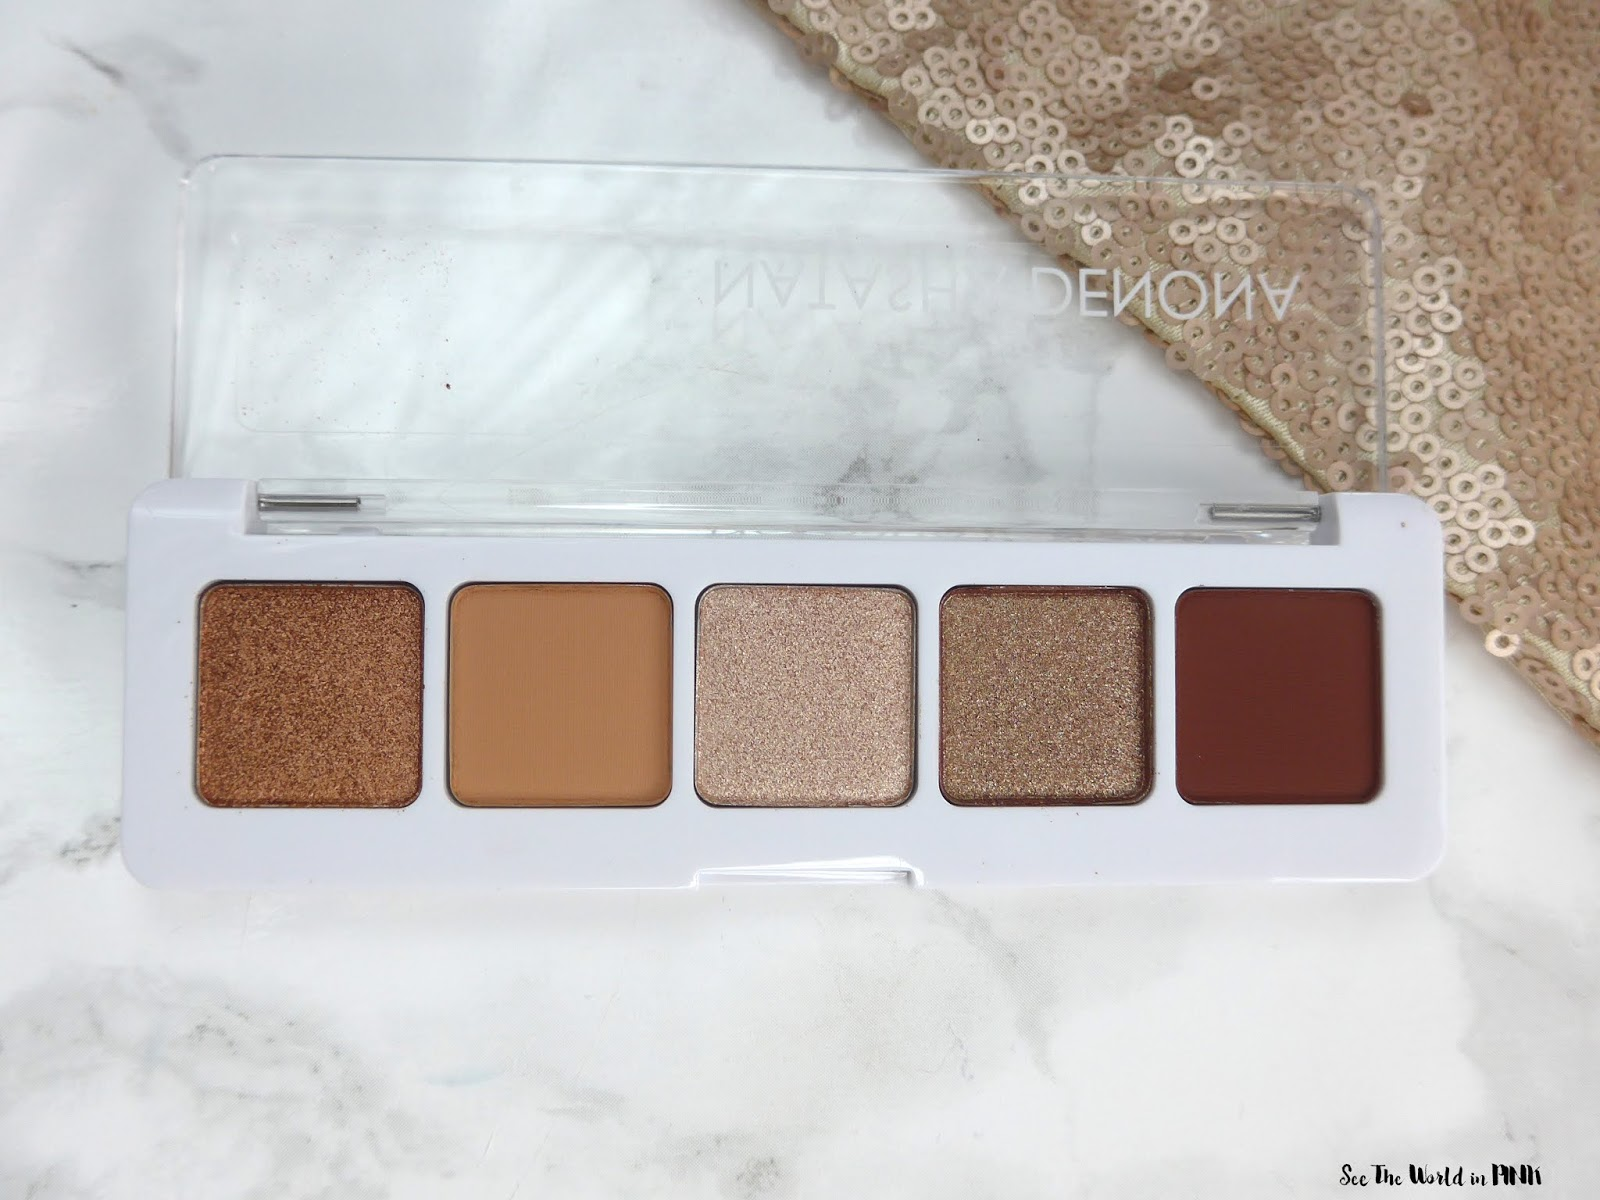 Natasha Denona Mini Nude Eyeshadow Palette - Swatches, Review and Look!